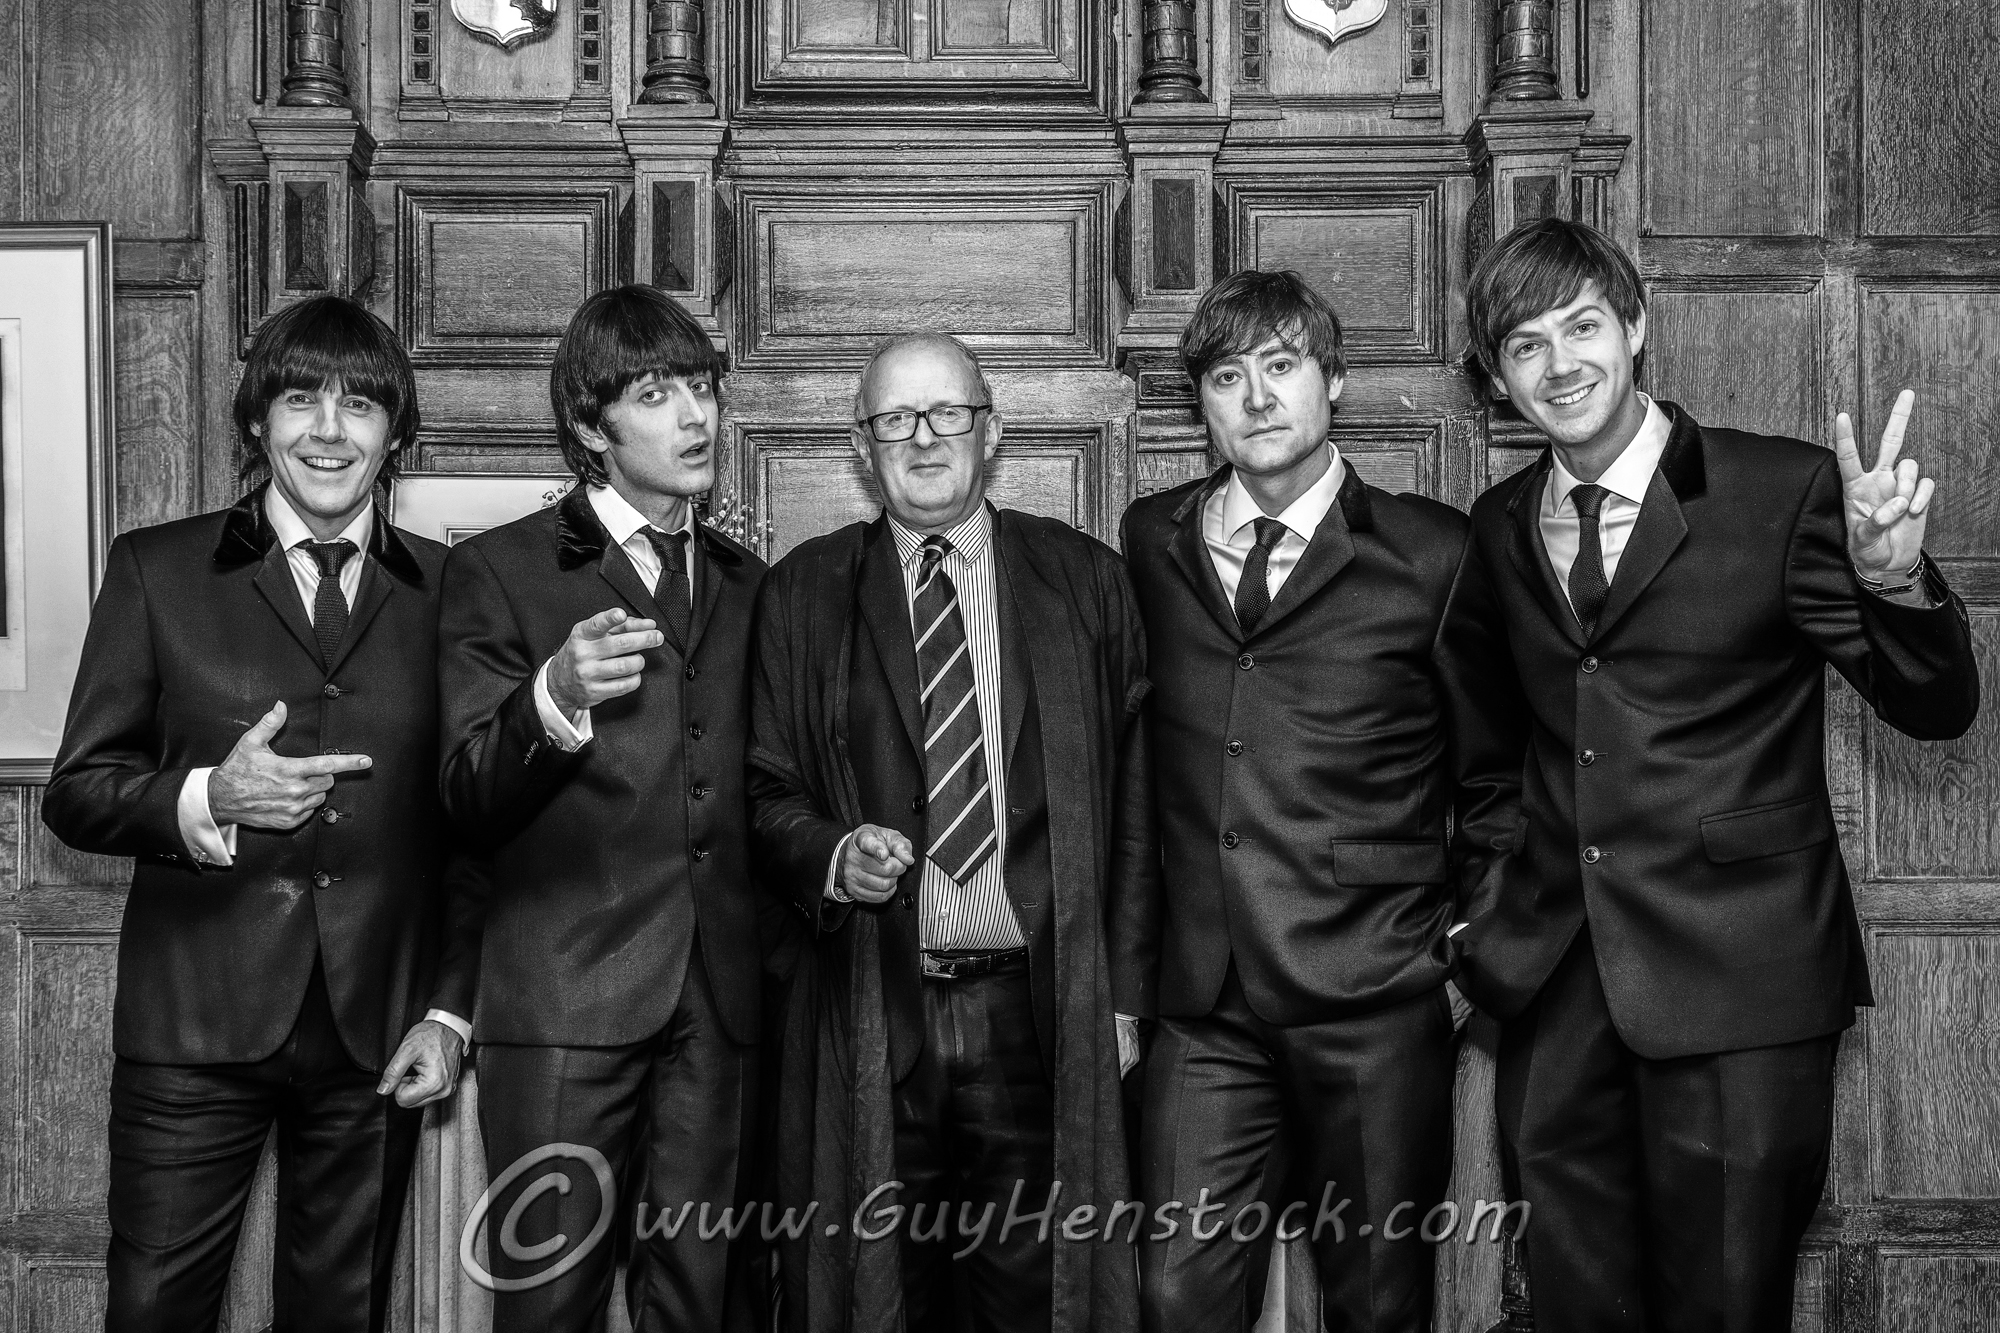 Beatles tribute act Let It Be at Brasenose College